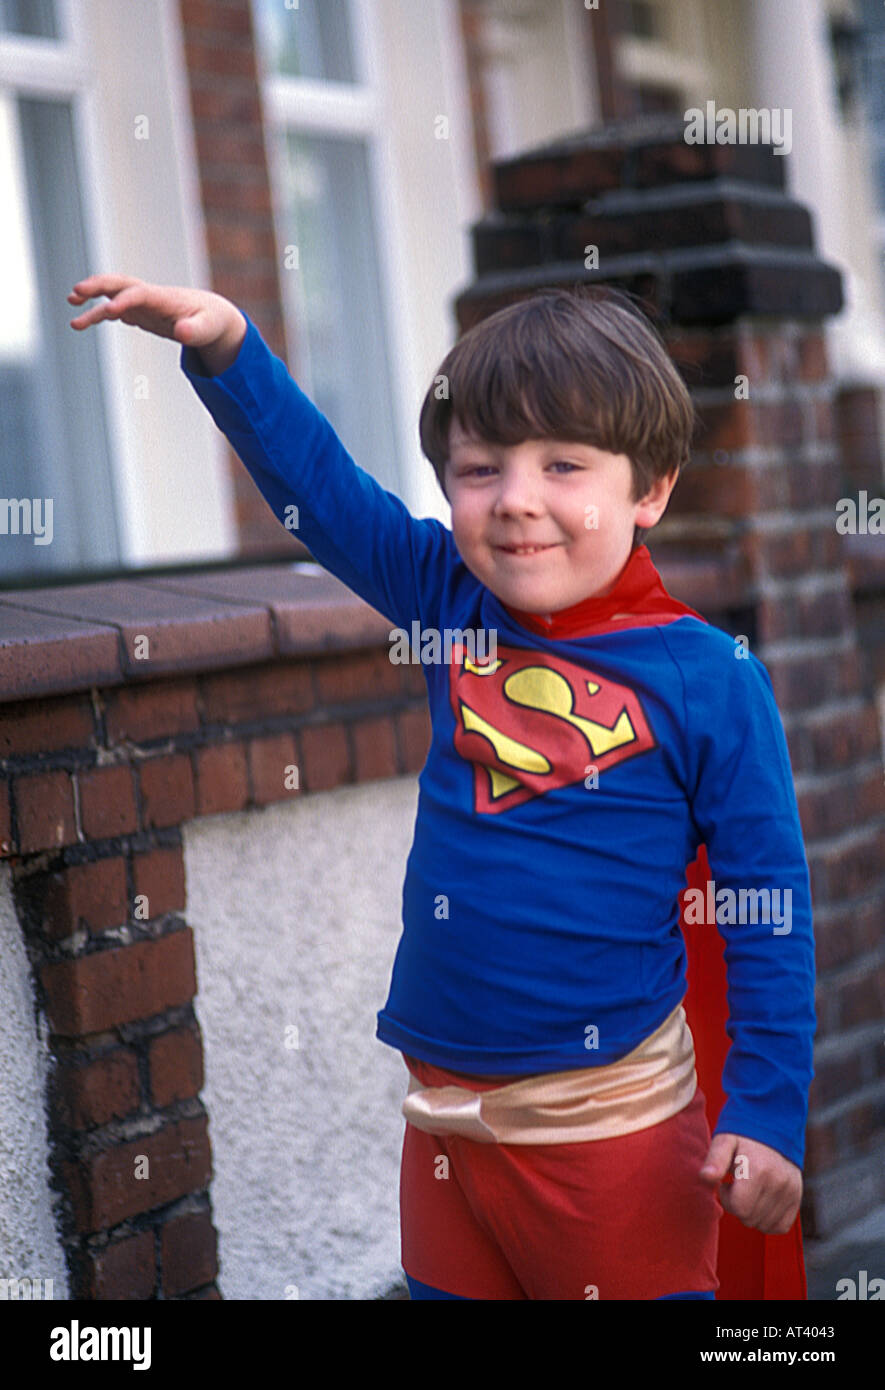 Three year old boy dressed in Superman outfit - Stock Image  sc 1 st  Alamy & Children Dressing Up Superman Stock Photos u0026 Children Dressing Up ...